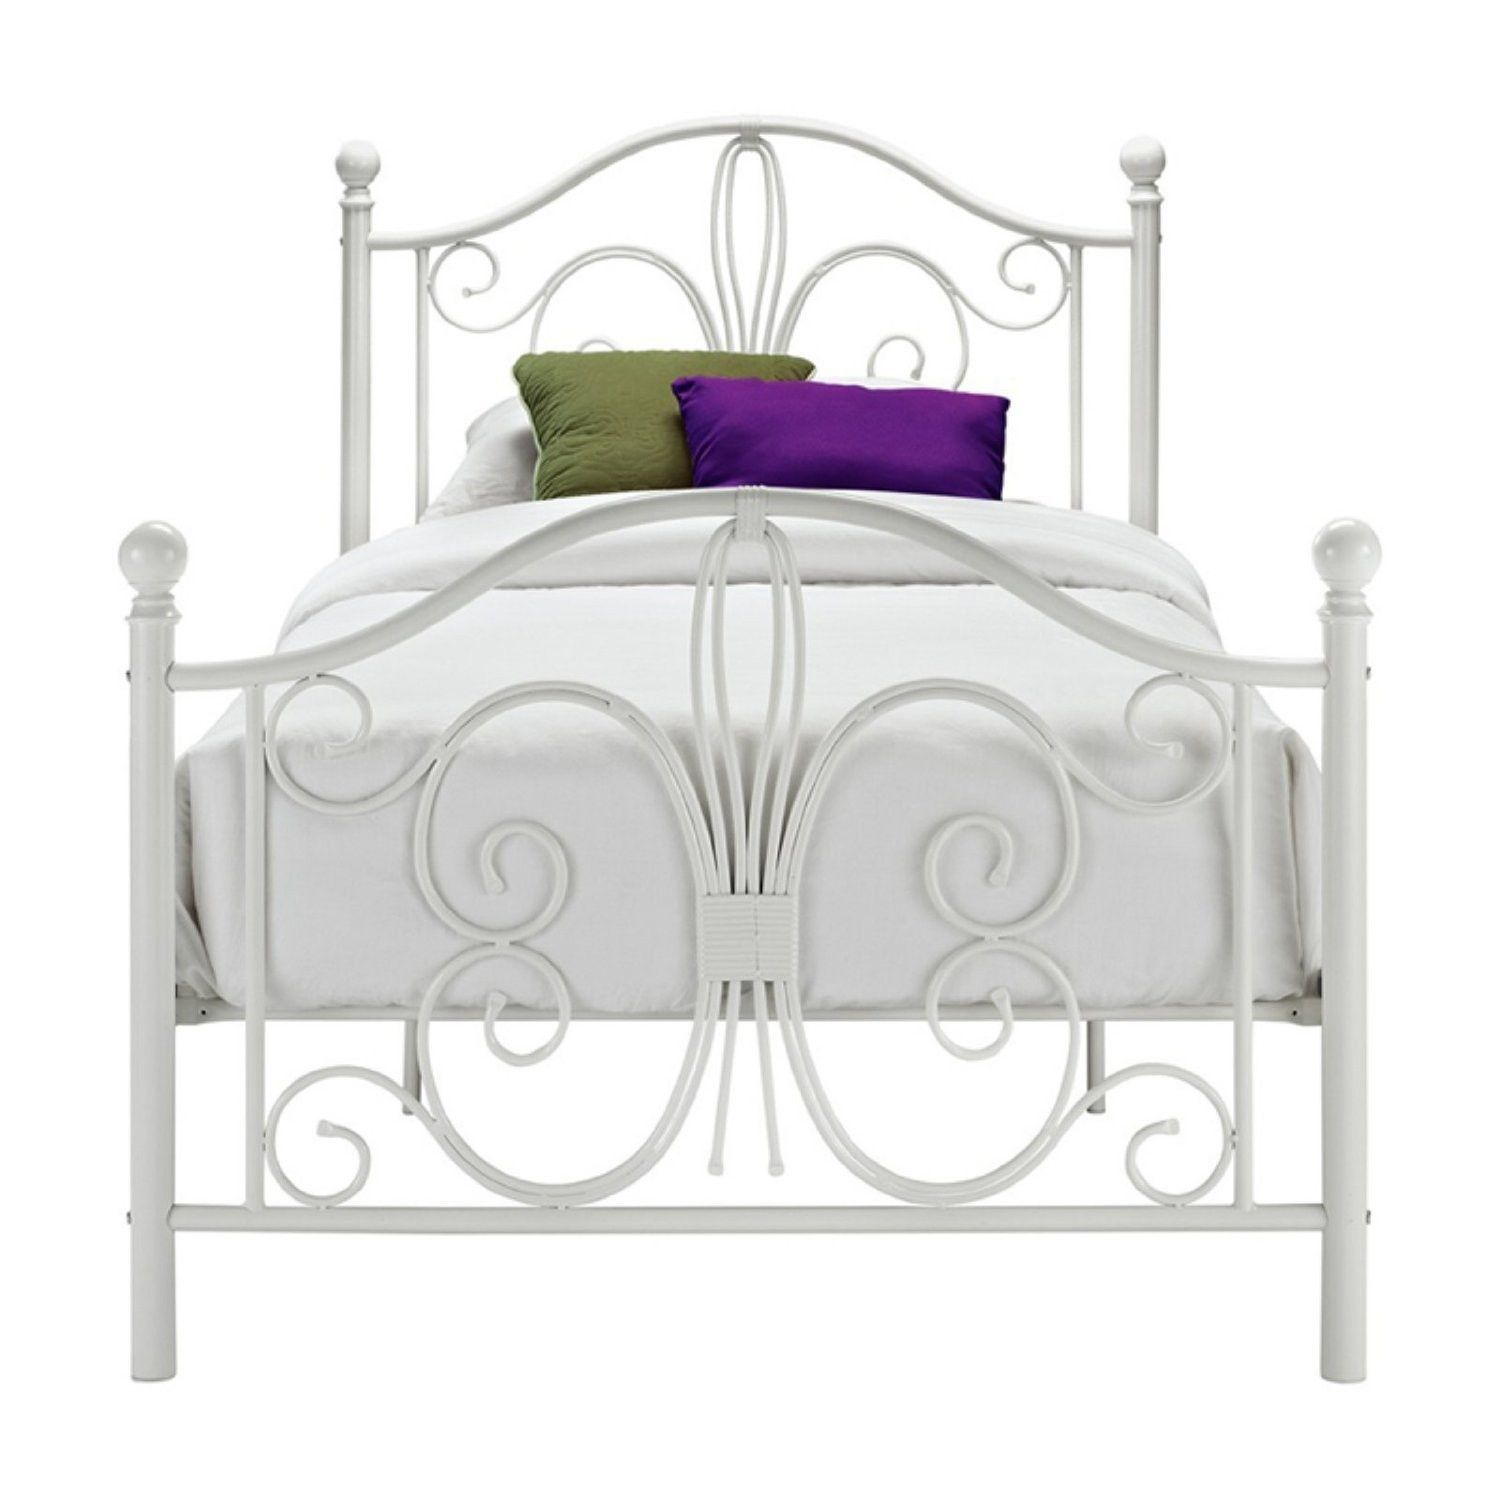 Twin White Metal Platform Bed Frame with Headboard and